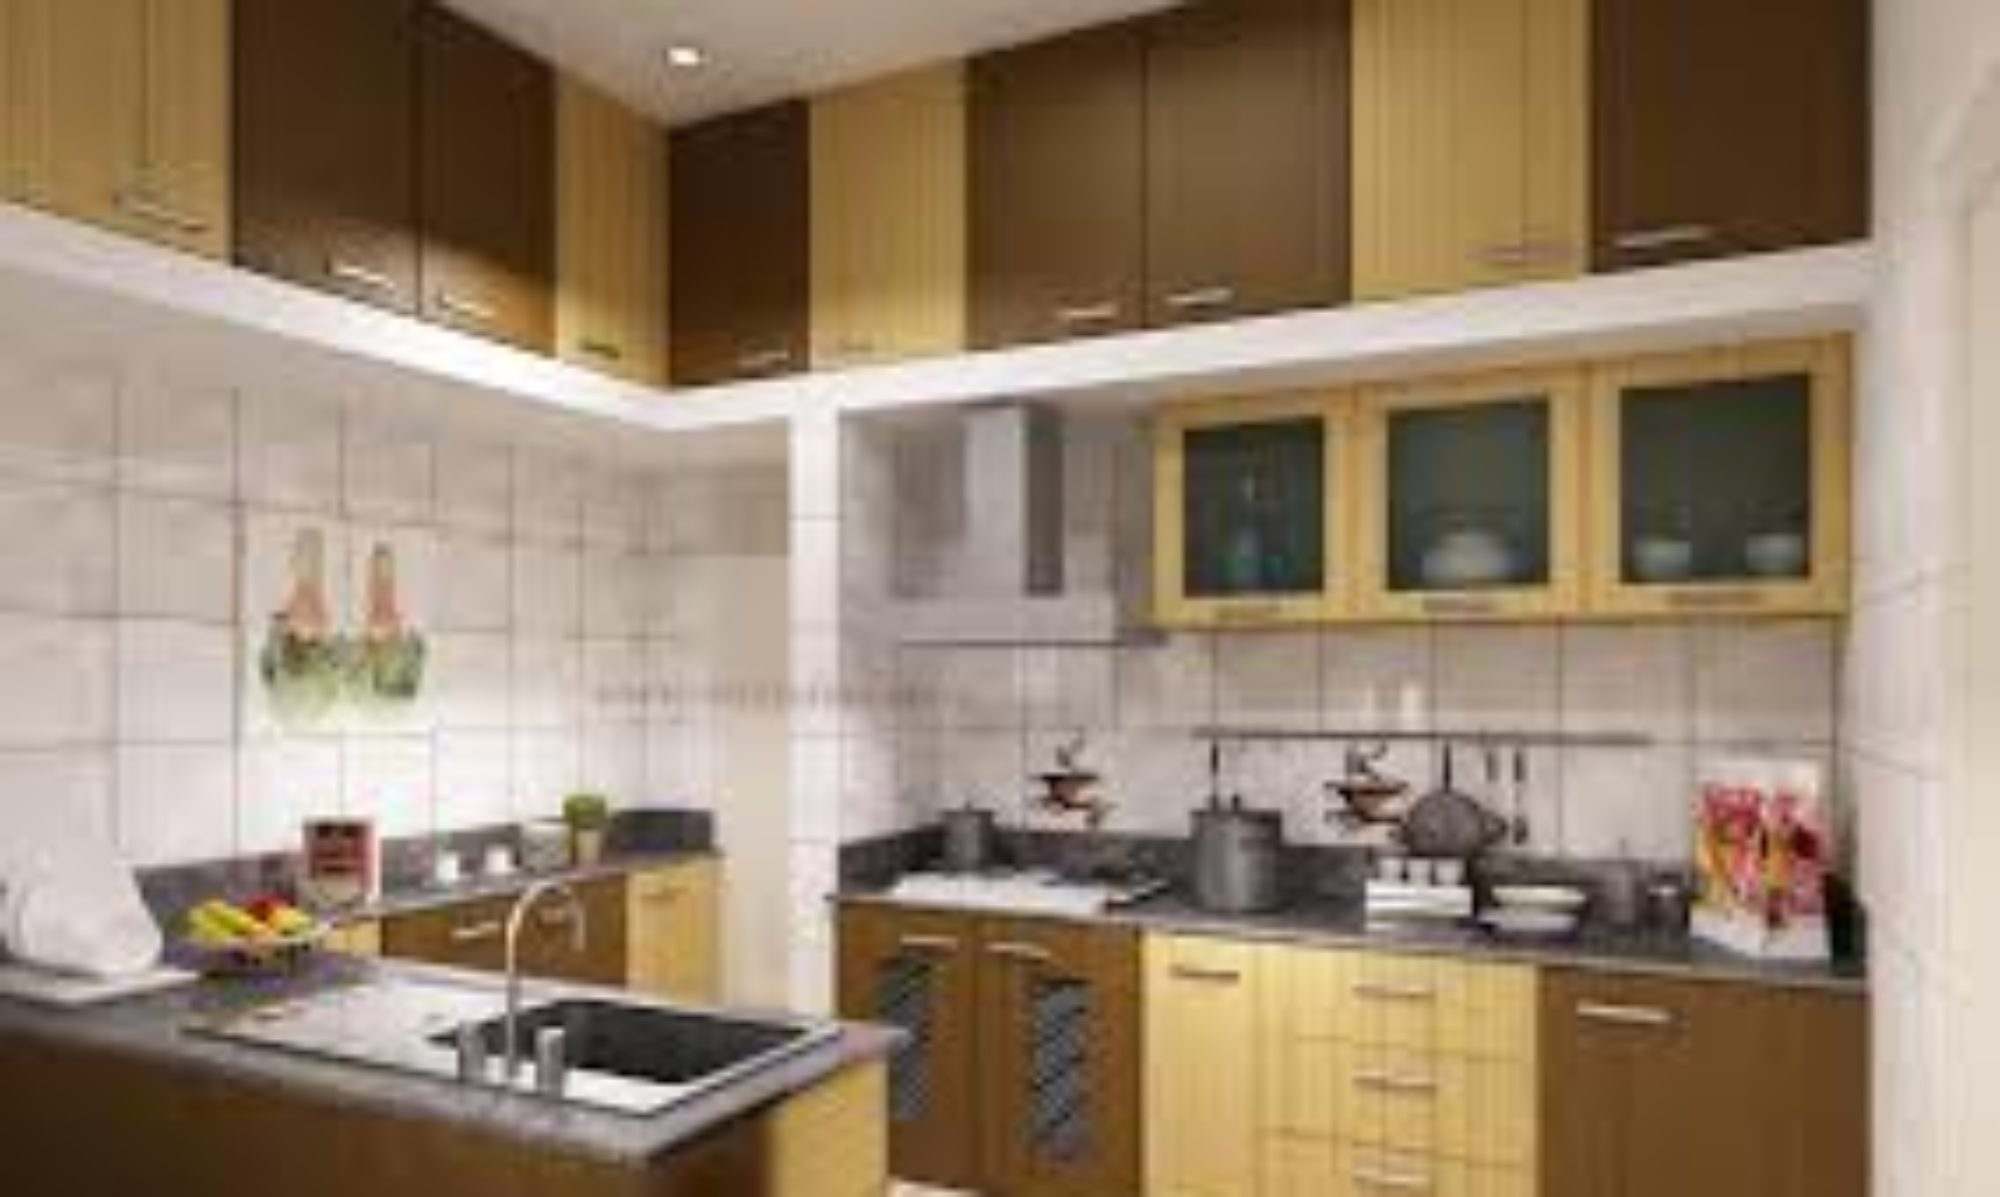 Kistan Kitchen & Appliances Pvt Ltd - Best Modular kitchen manufacturers in noida